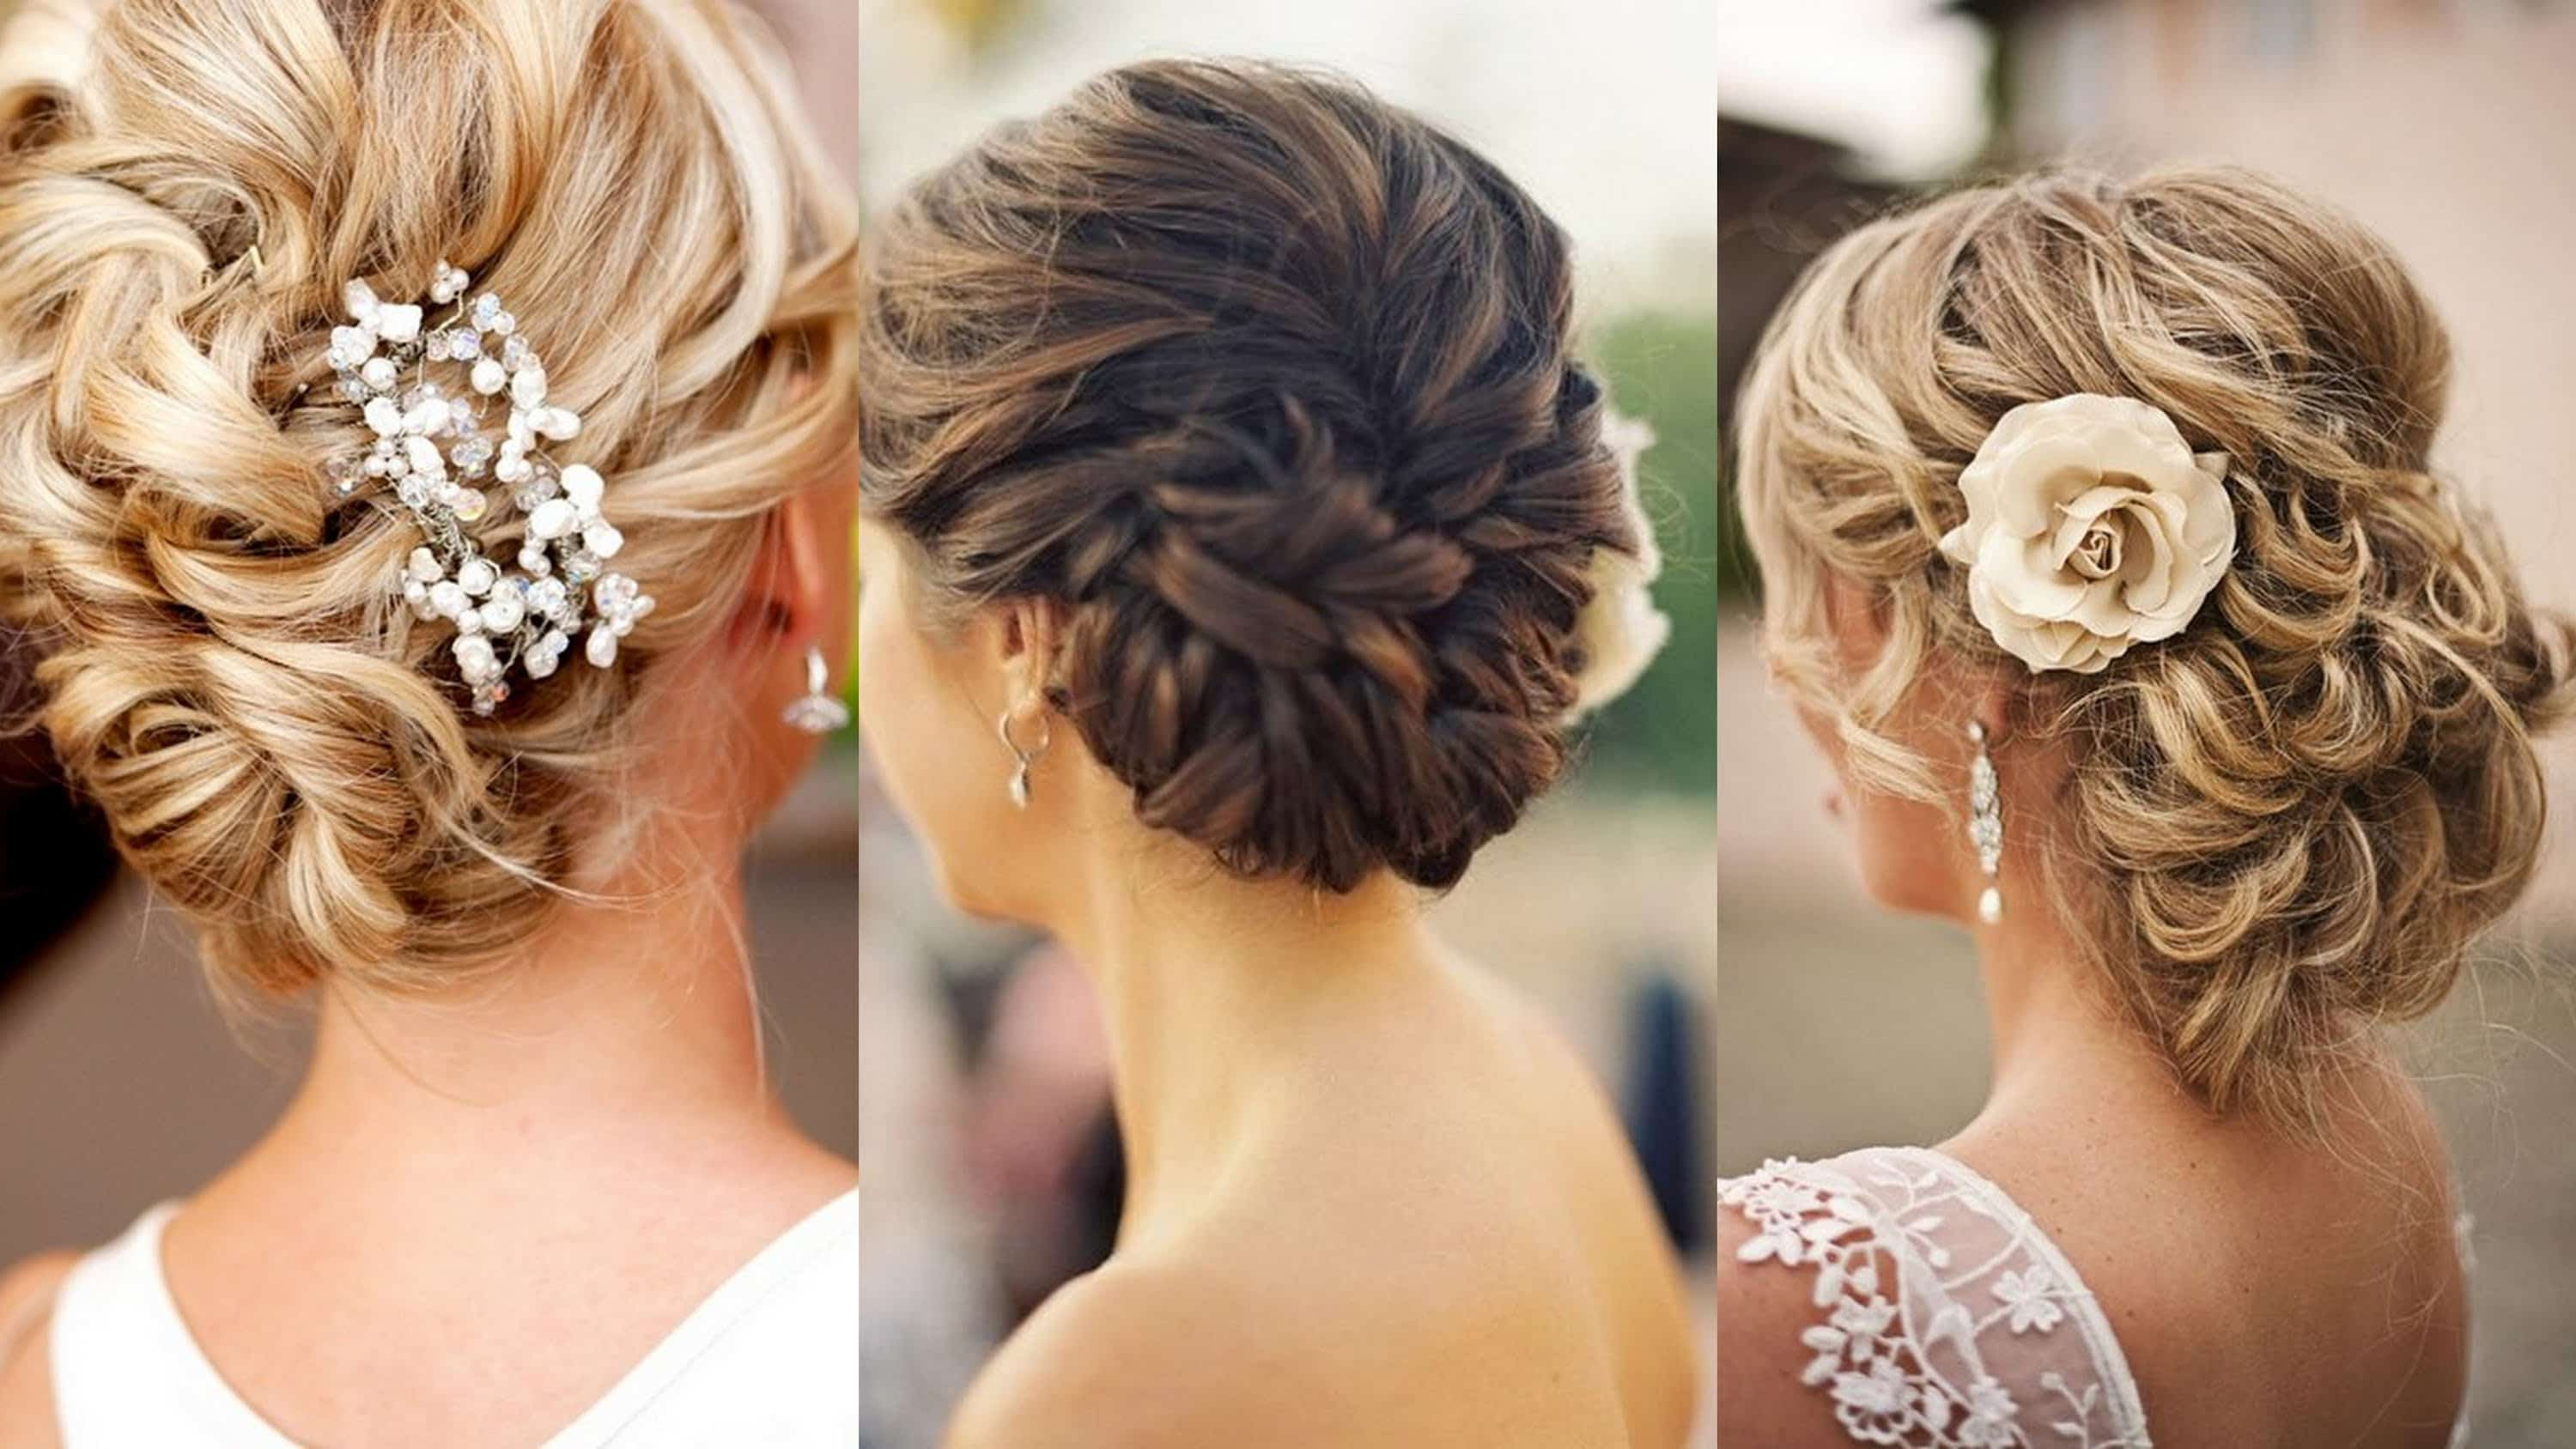 20 Stunning Wedding Hair Updos To Inspire Every Bride – Hairstylevill Inside Well Liked Chignon Wedding Hairstyles With Pinned Up Embellishment (View 14 of 20)